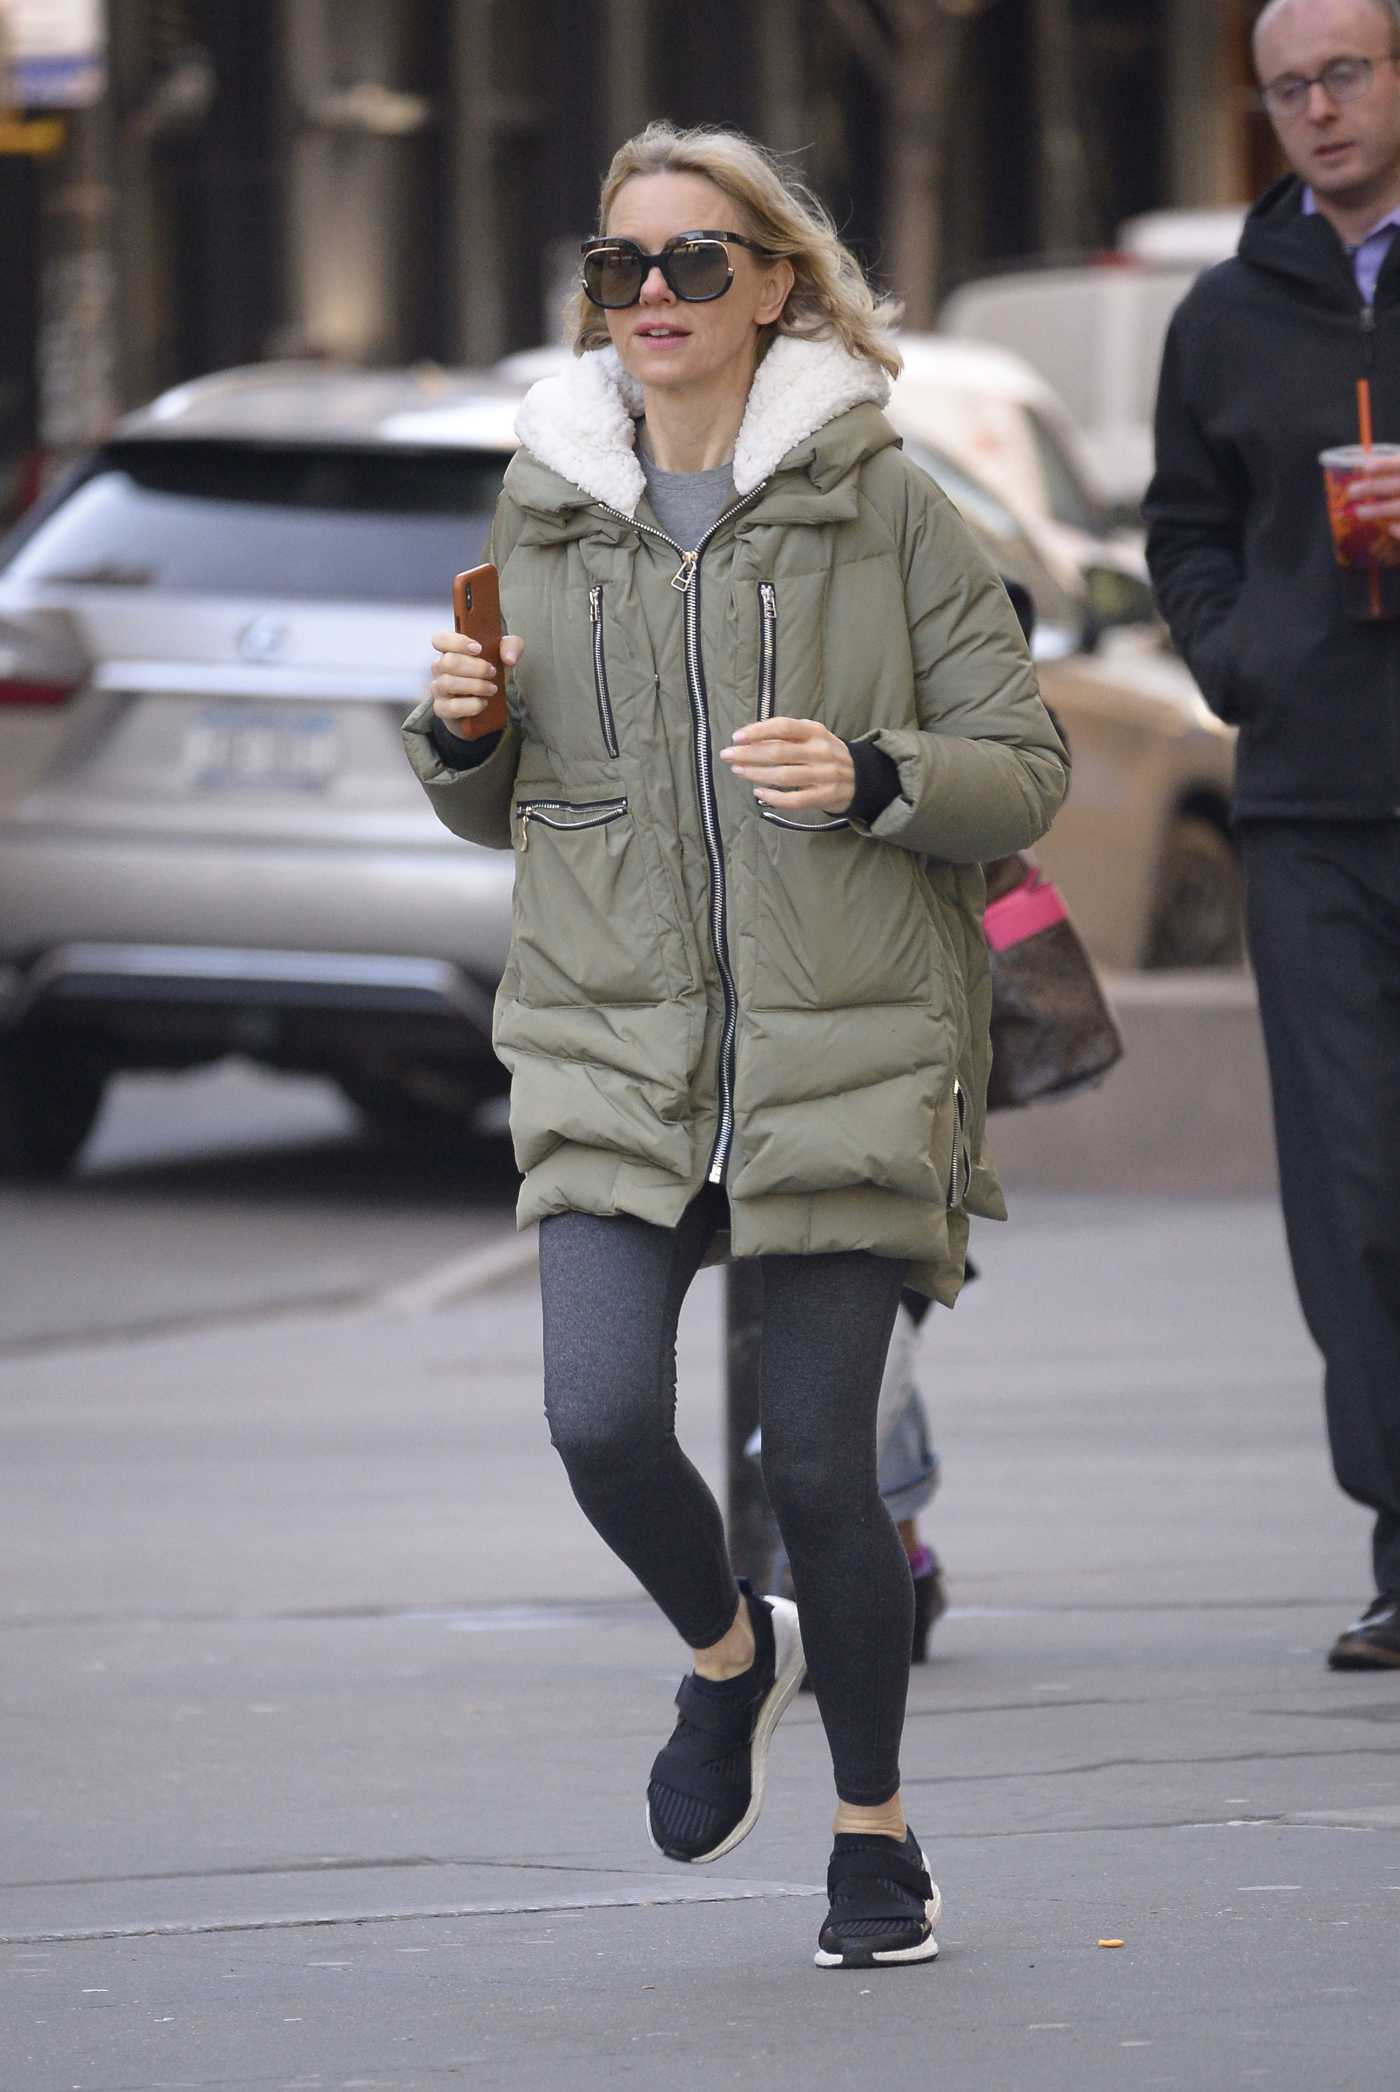 Naomi Watts in a Beige Puffer Jacket Running Back Home in NYC 03/28/2019